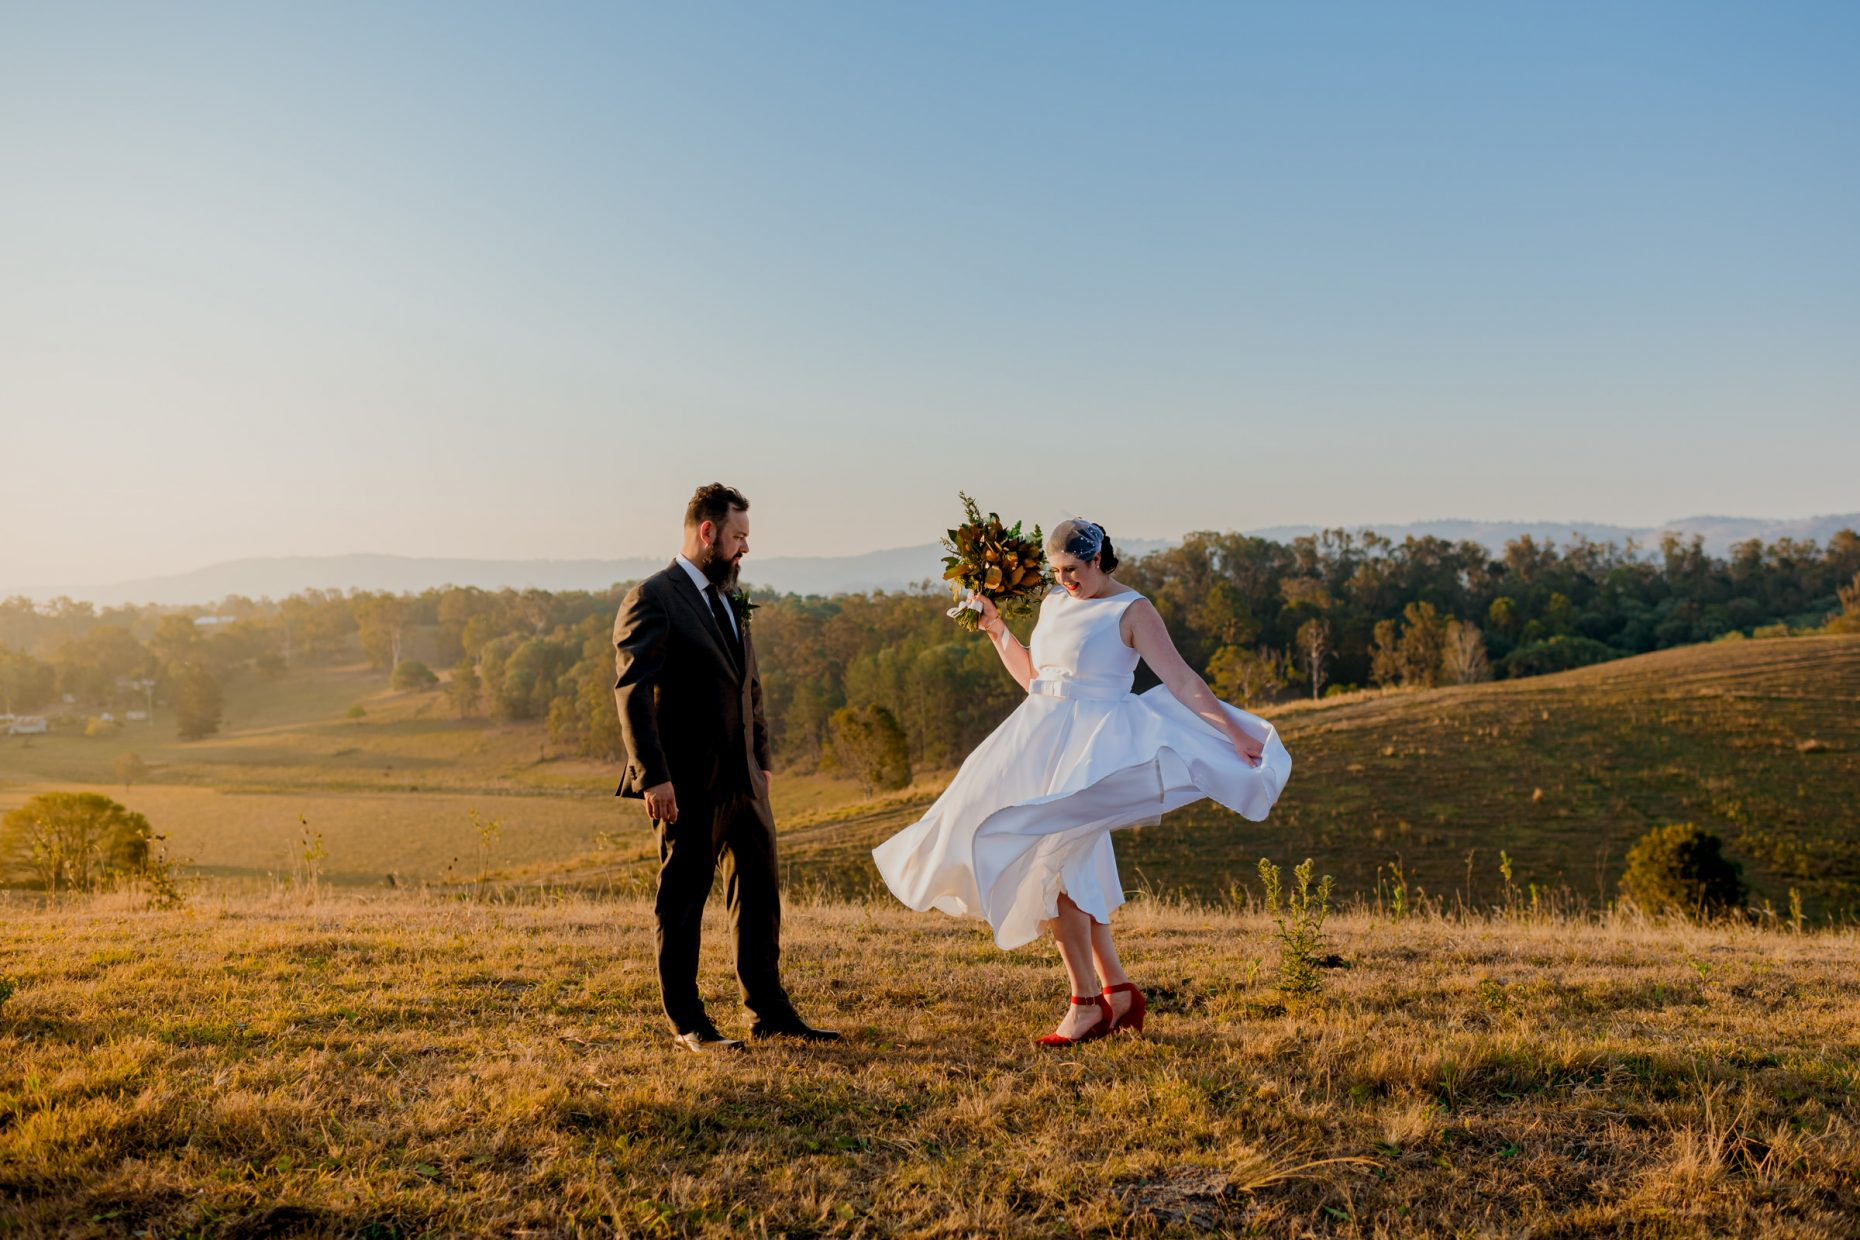 A bride stands on a grassy hill and spins her dress to a groom